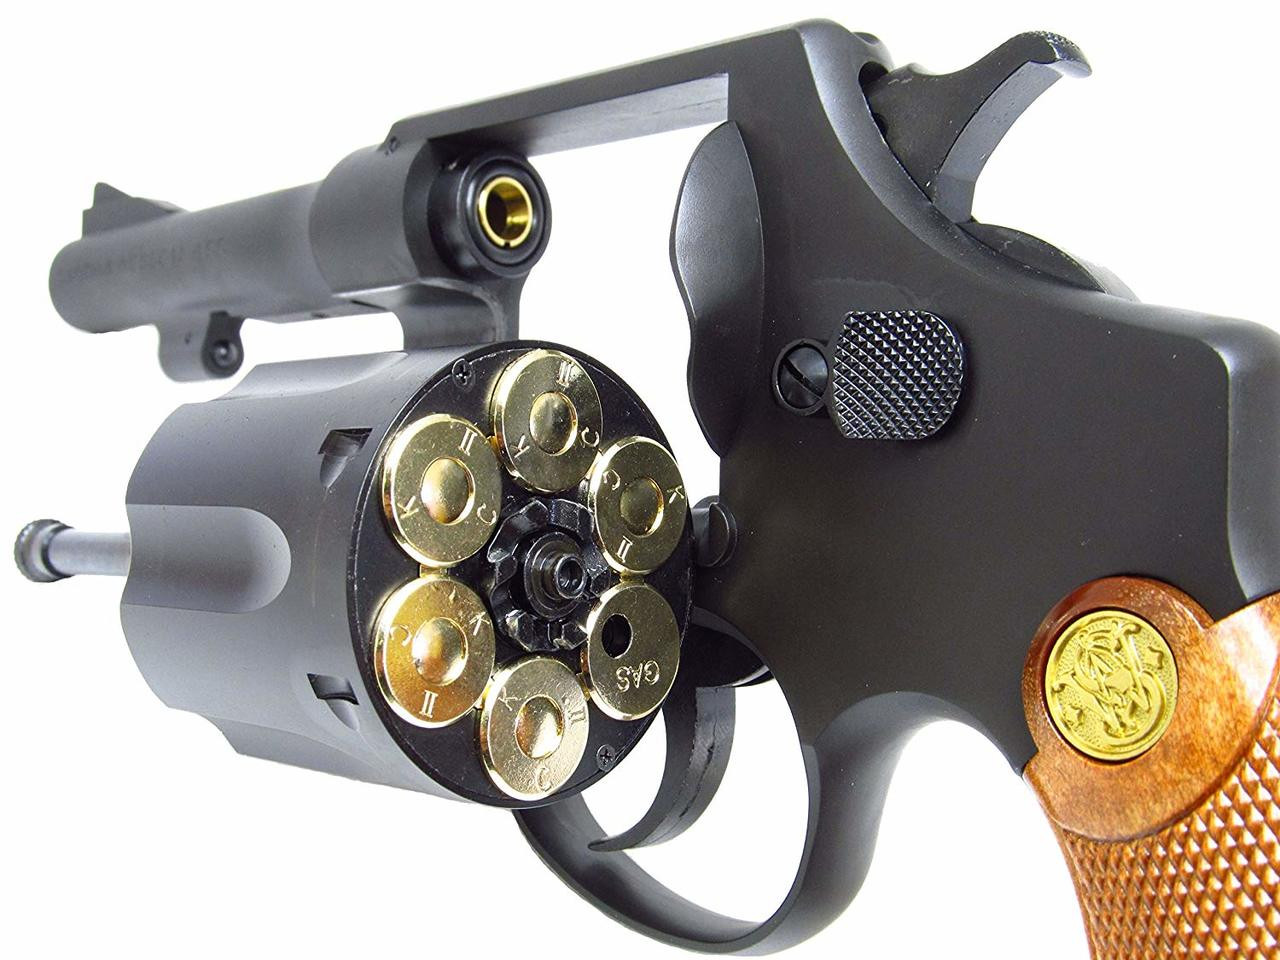 Back left of Tanaka Smith & Wesson M1917 .455 HE2 4inch Custom Heavy Weight Gas Revolver Airsoft Gun